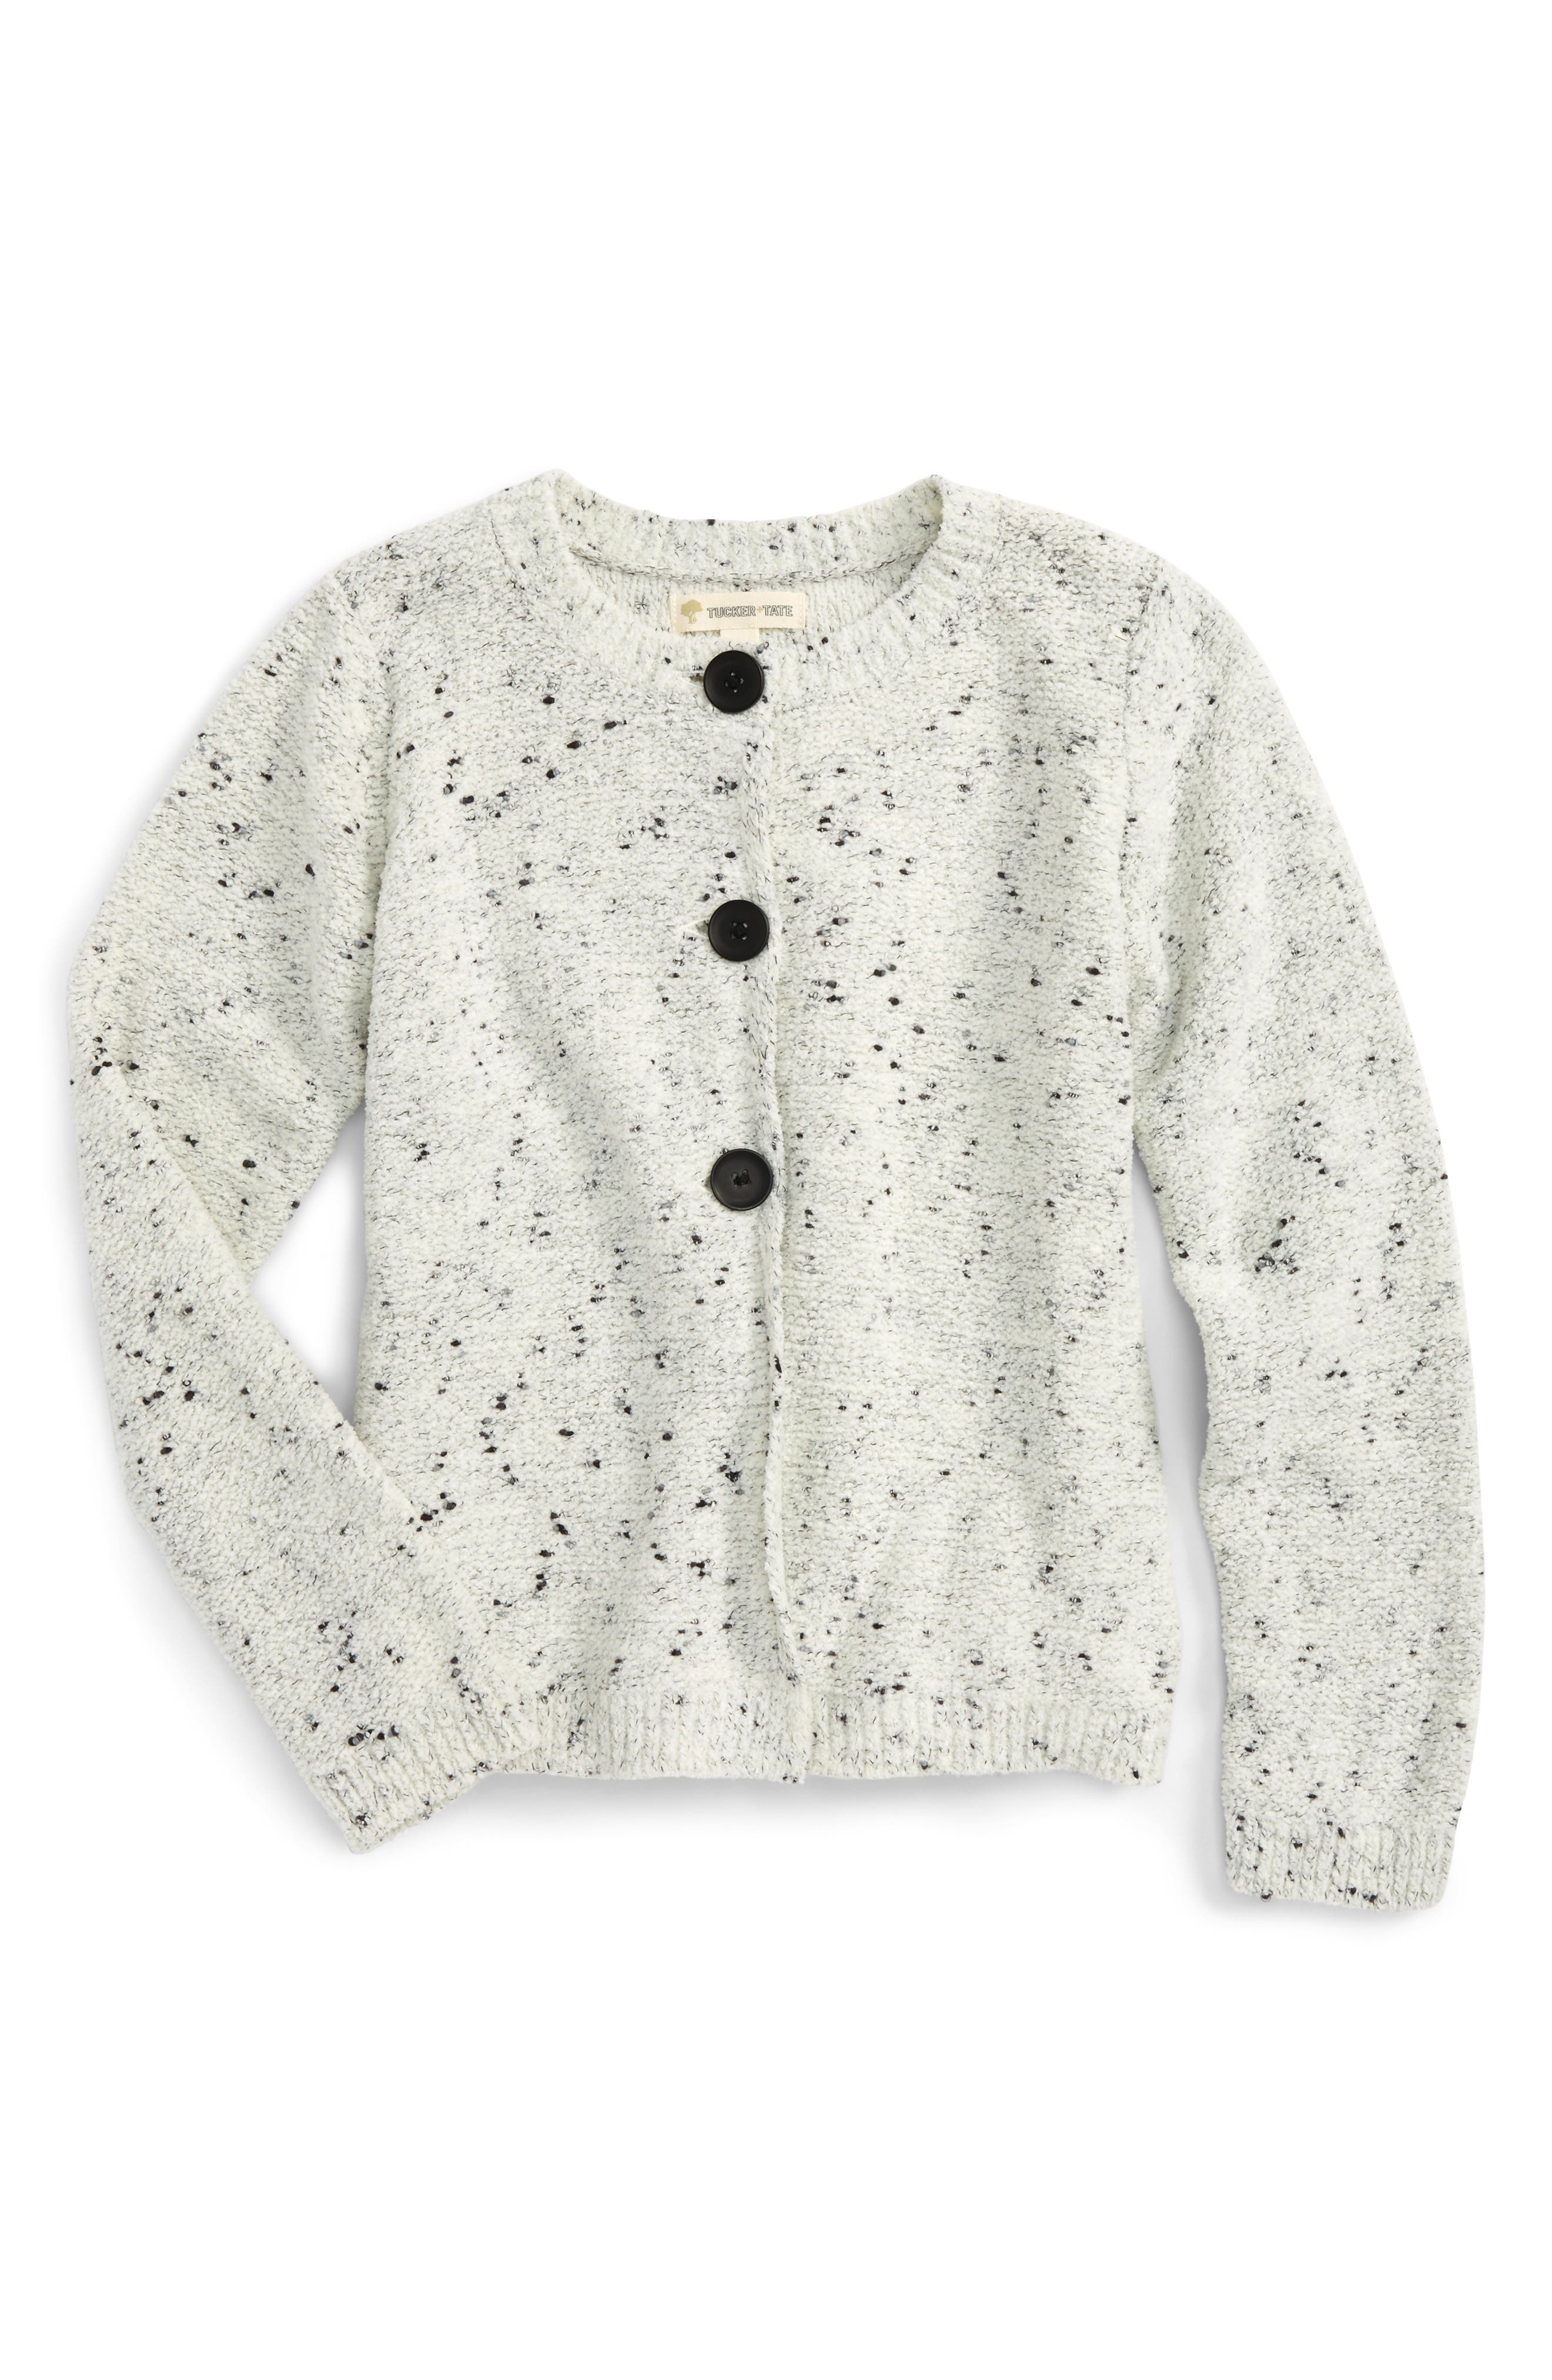 Speckle Swing Cardigan,                         Main,                         color, Ivory Egret- Black